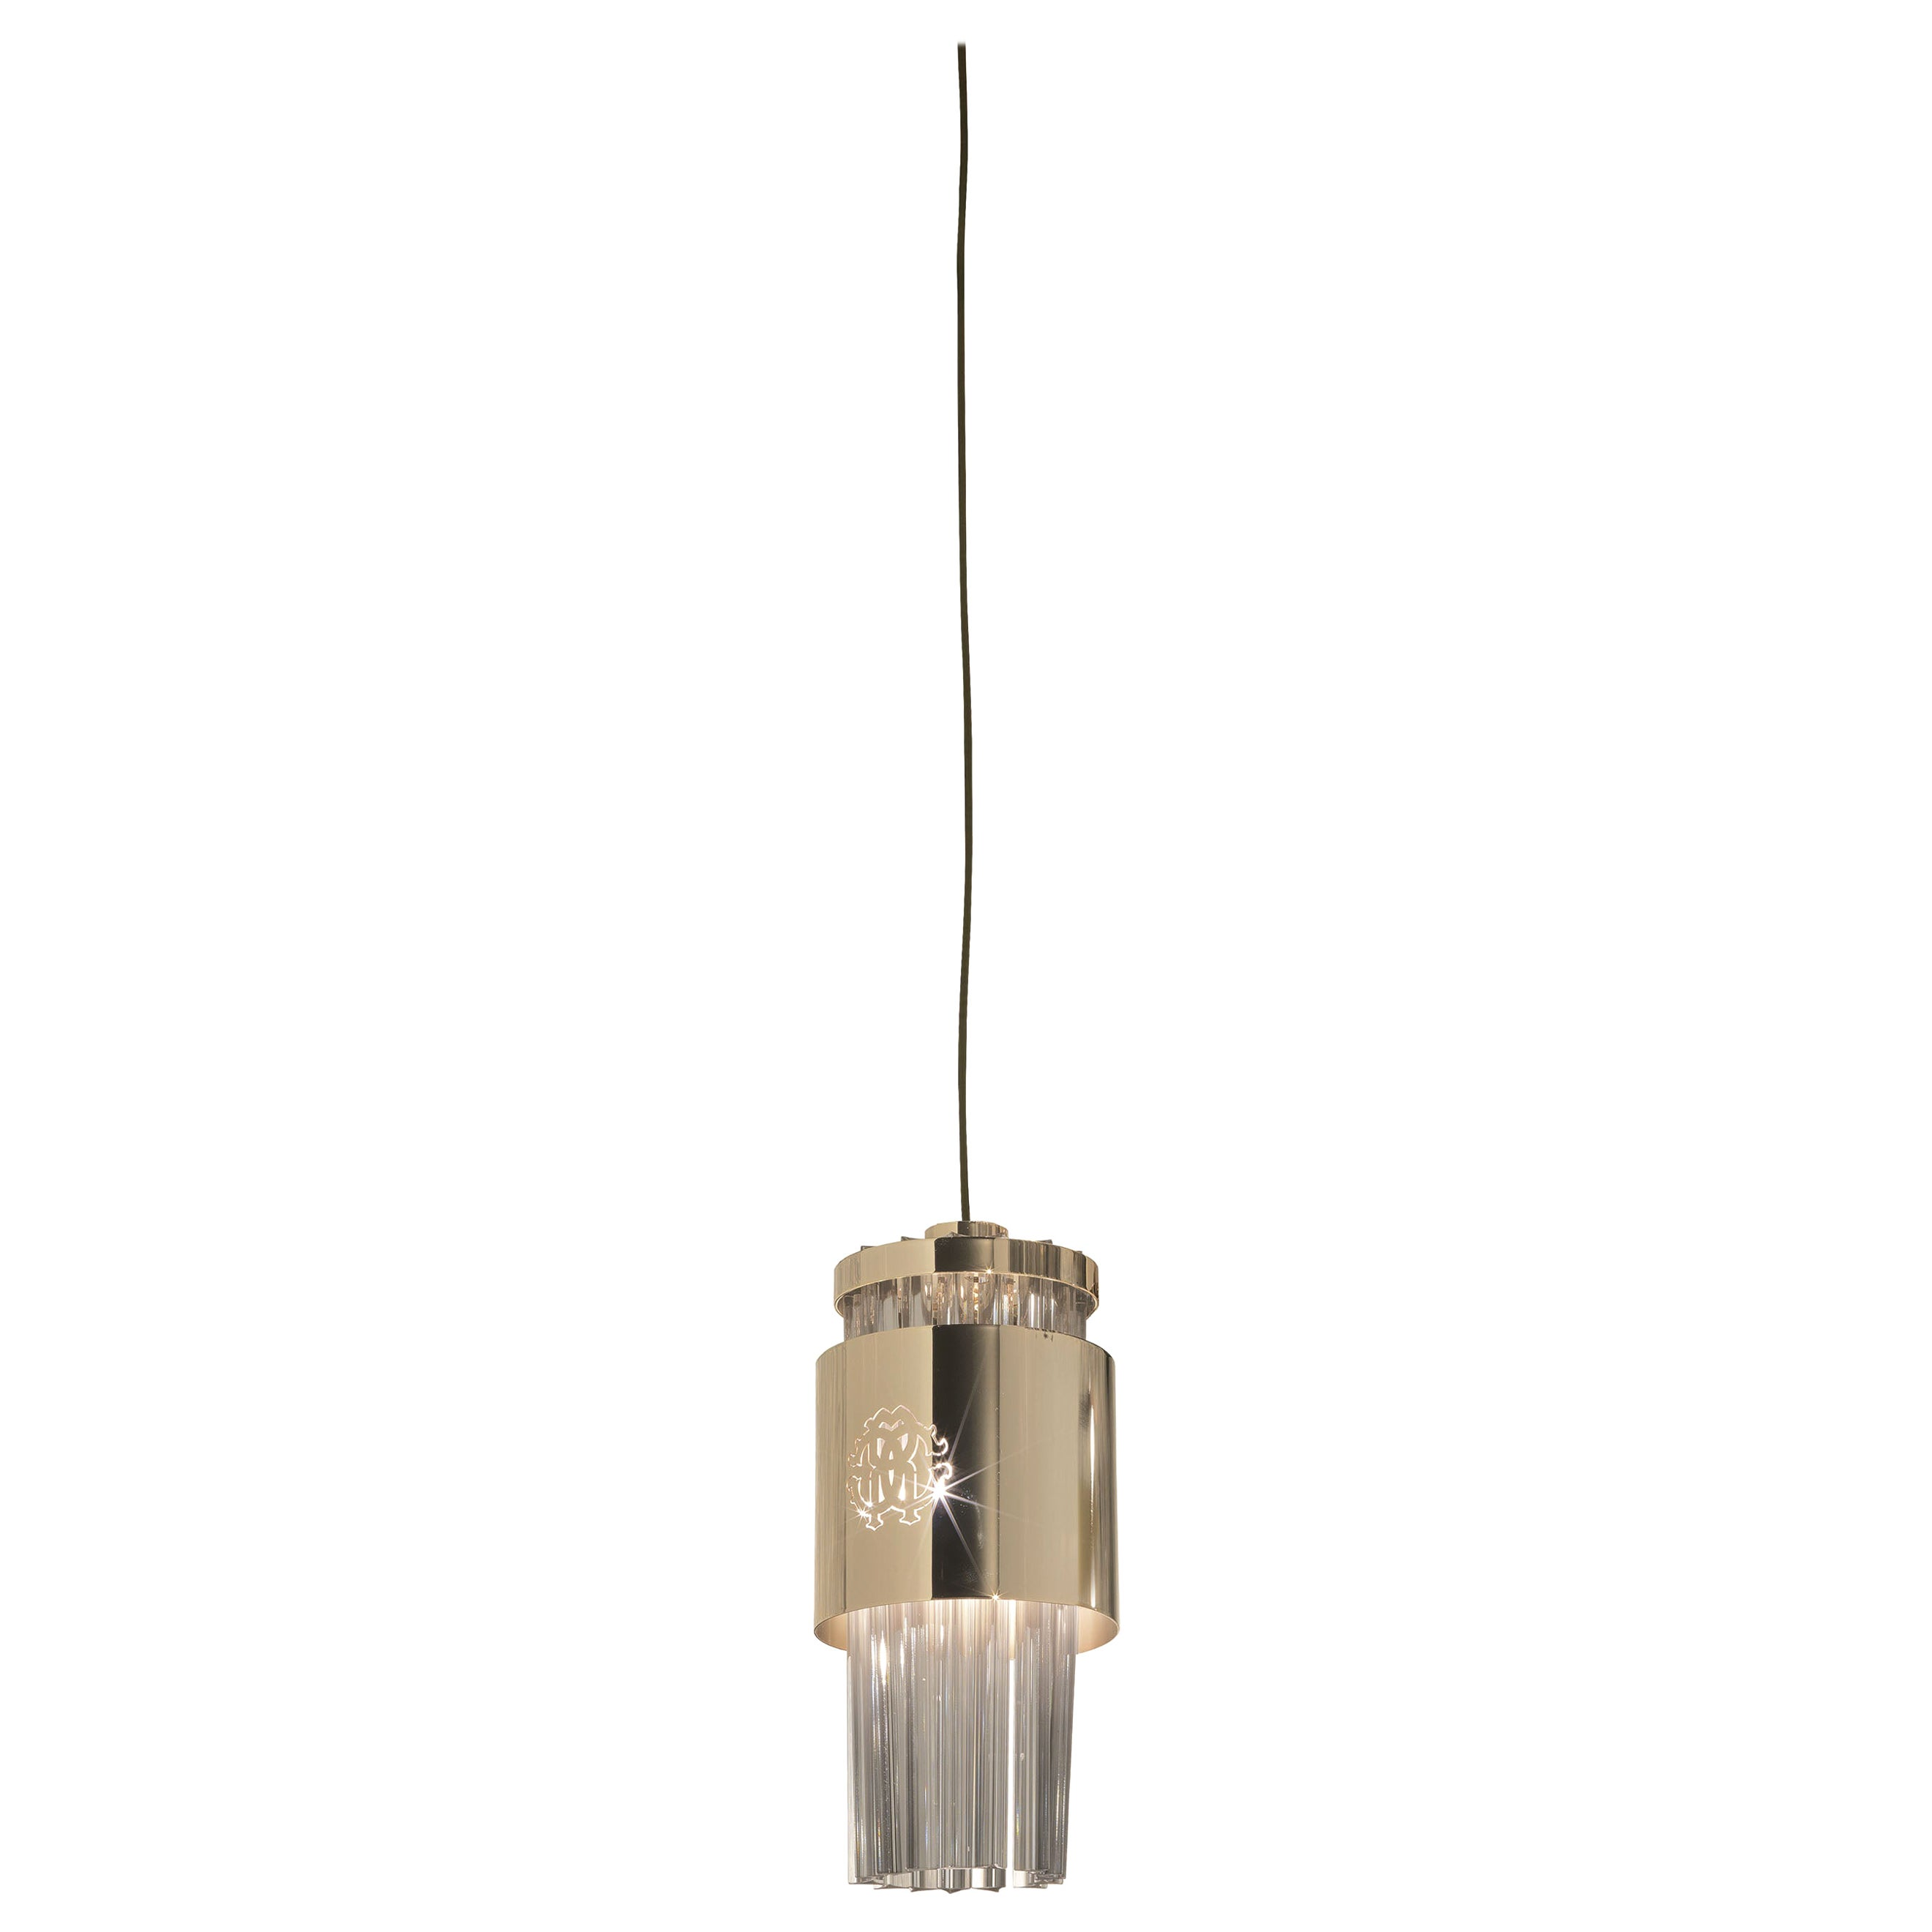 Lipari Chandelier in Metal and Glass by Roberto Cavalli Home Interiors